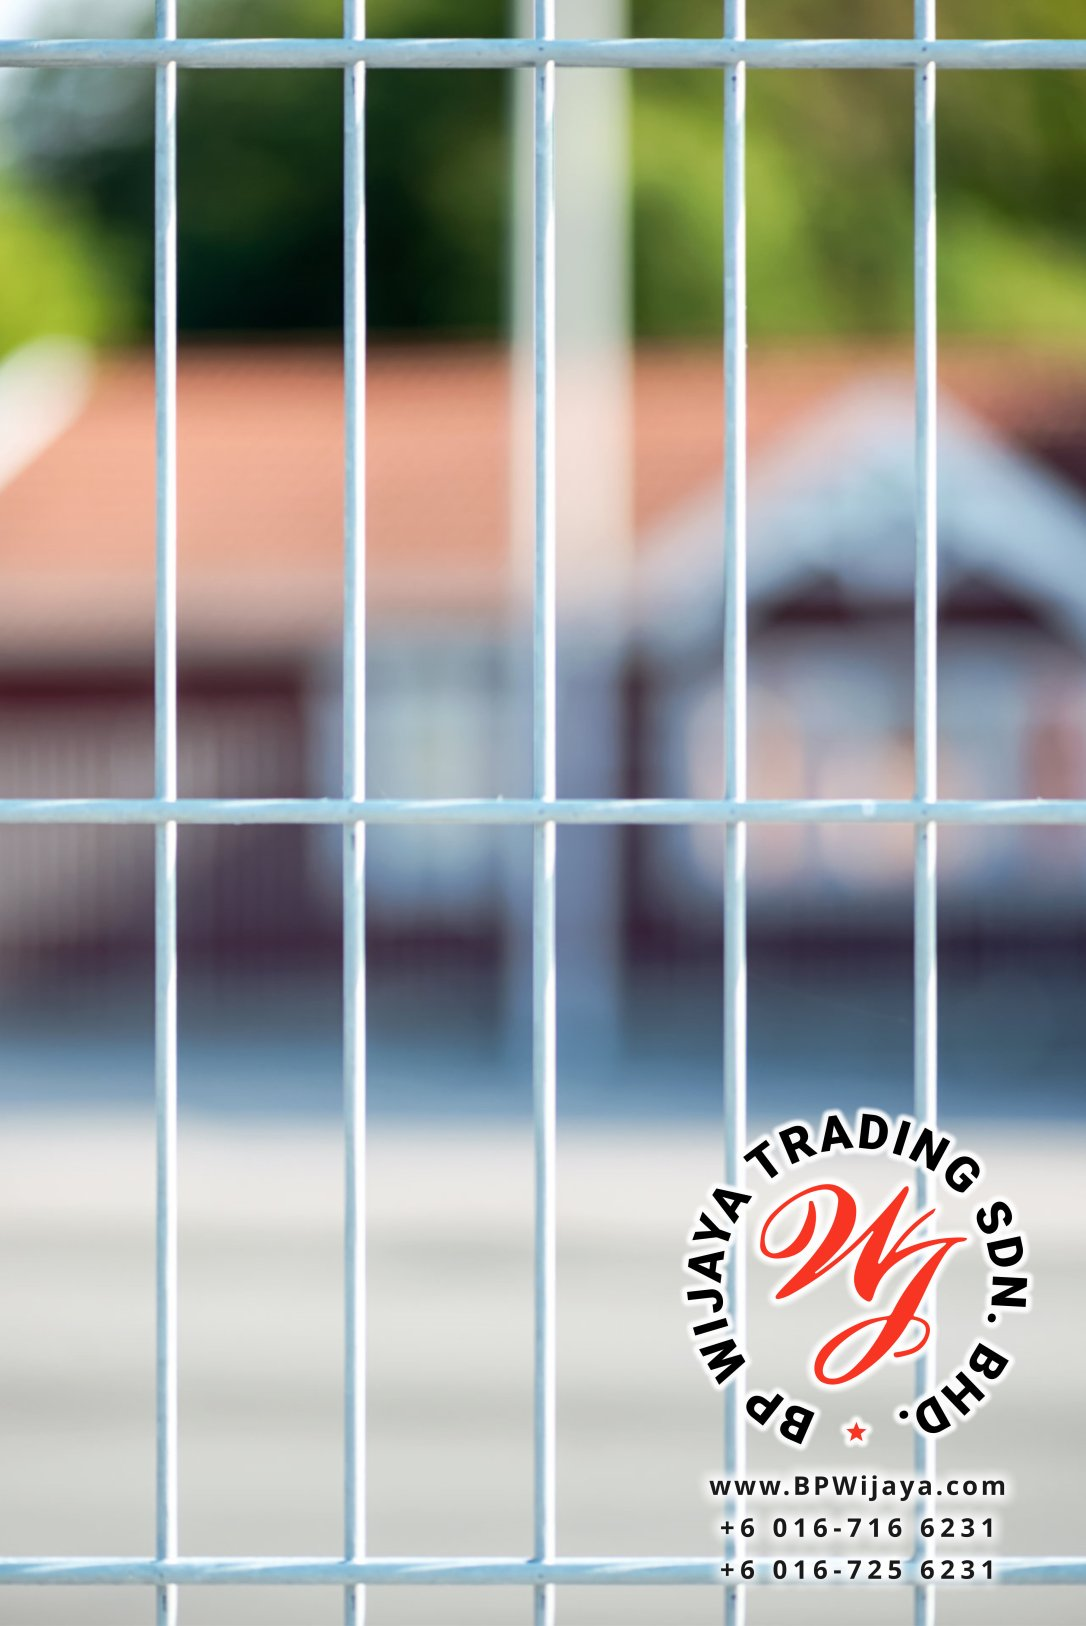 BP Wijaya Trading Sdn Bhd Malaysia manufacturer Distributor safety fences building materials Anti Climb Fence ACF 25 Mesh Wire Fence ACF Fence BRC from Johor Batu Pahat B11